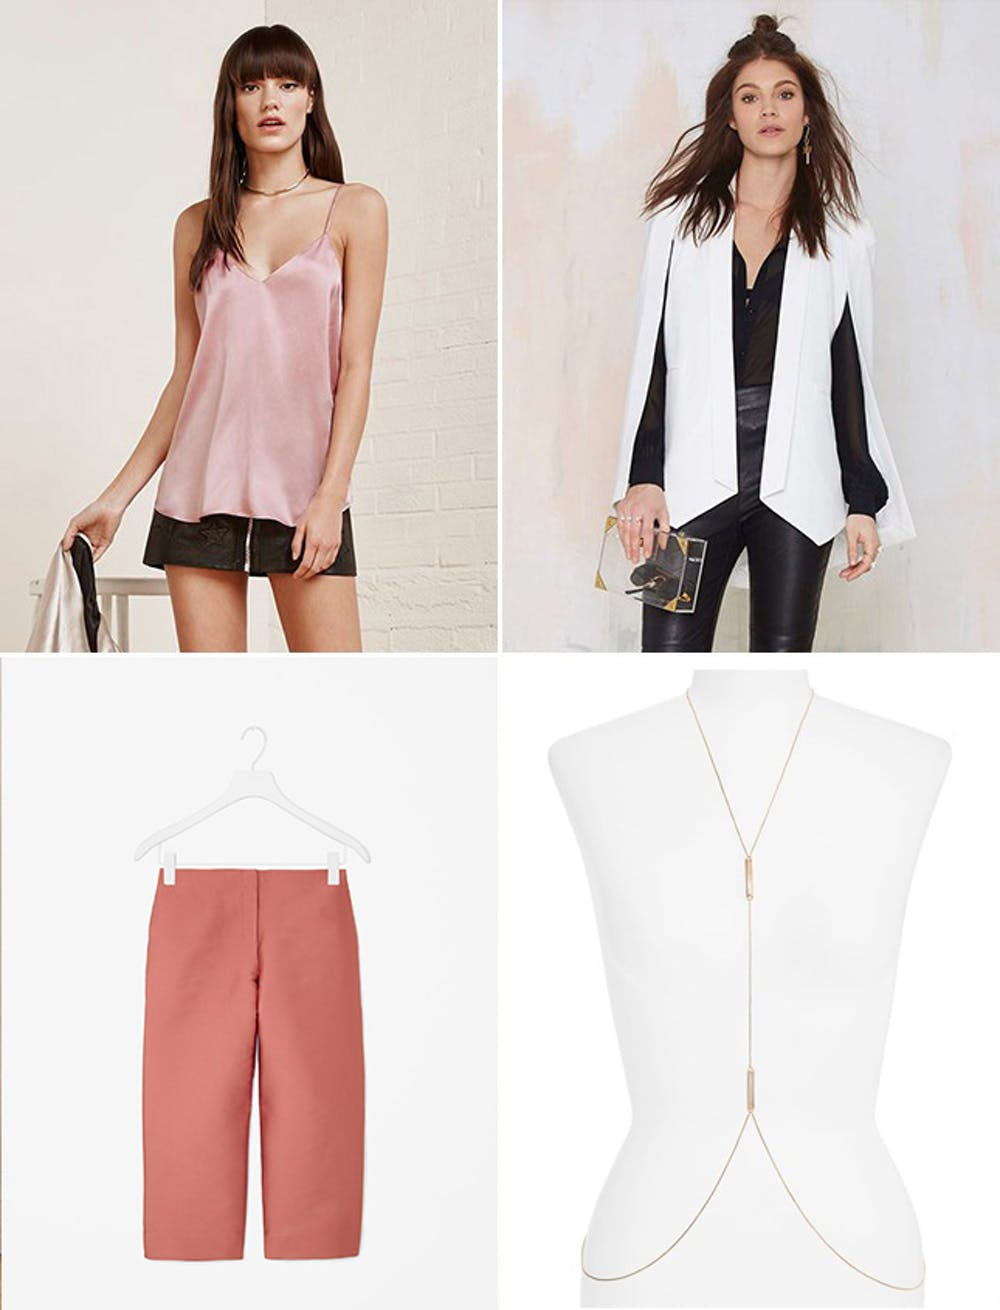 what-to-wear-for-a-spring-wedding-guest-outfit-pink-light-culottes-pants-pink-light-cami-white-jacket-blazer-necklace-dinner.jpg